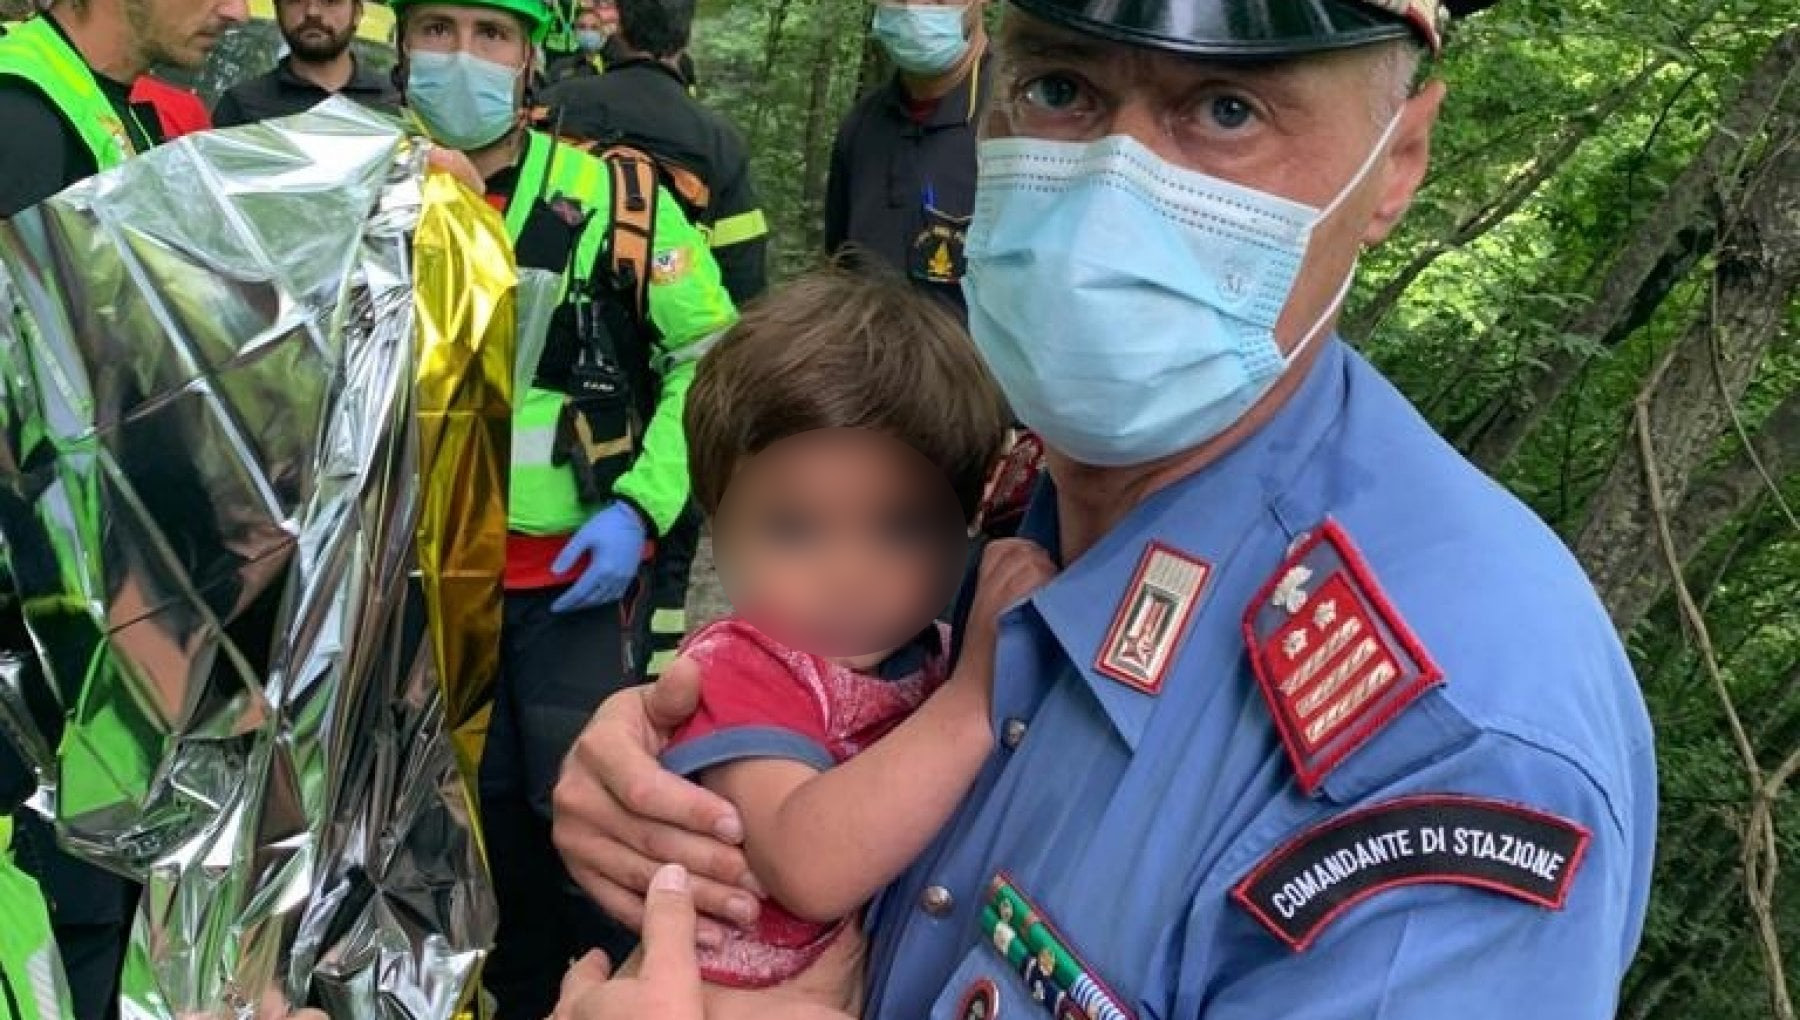 Journalist finds missing toddler while reporting on his disappearance